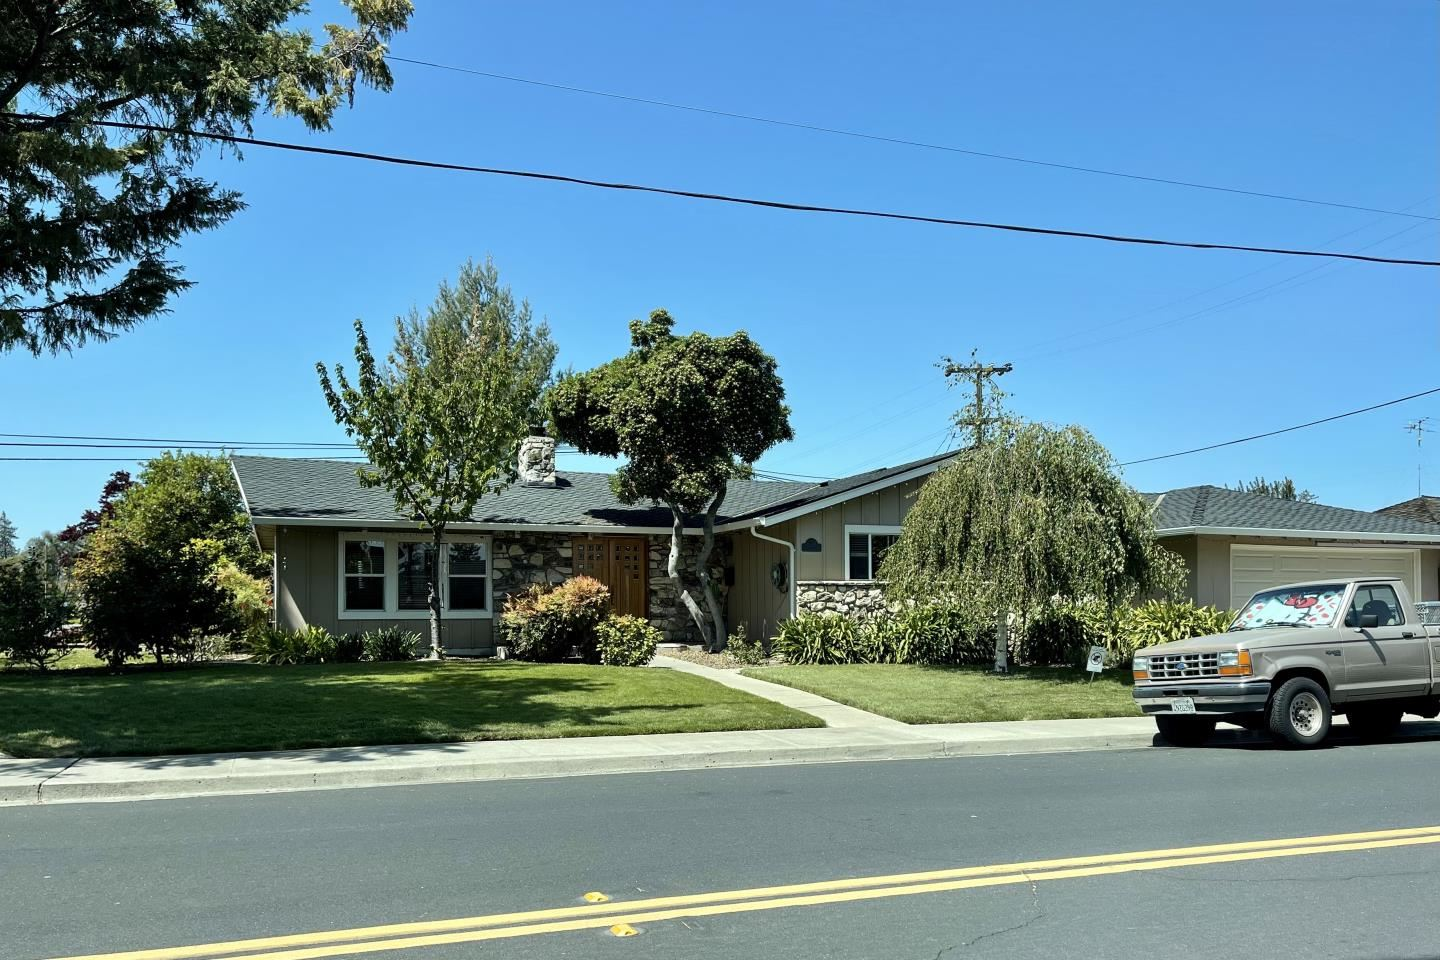 Photo for 255 South Midway Street, CAMPBELL, CA 95008 (MLS # ML81845518)